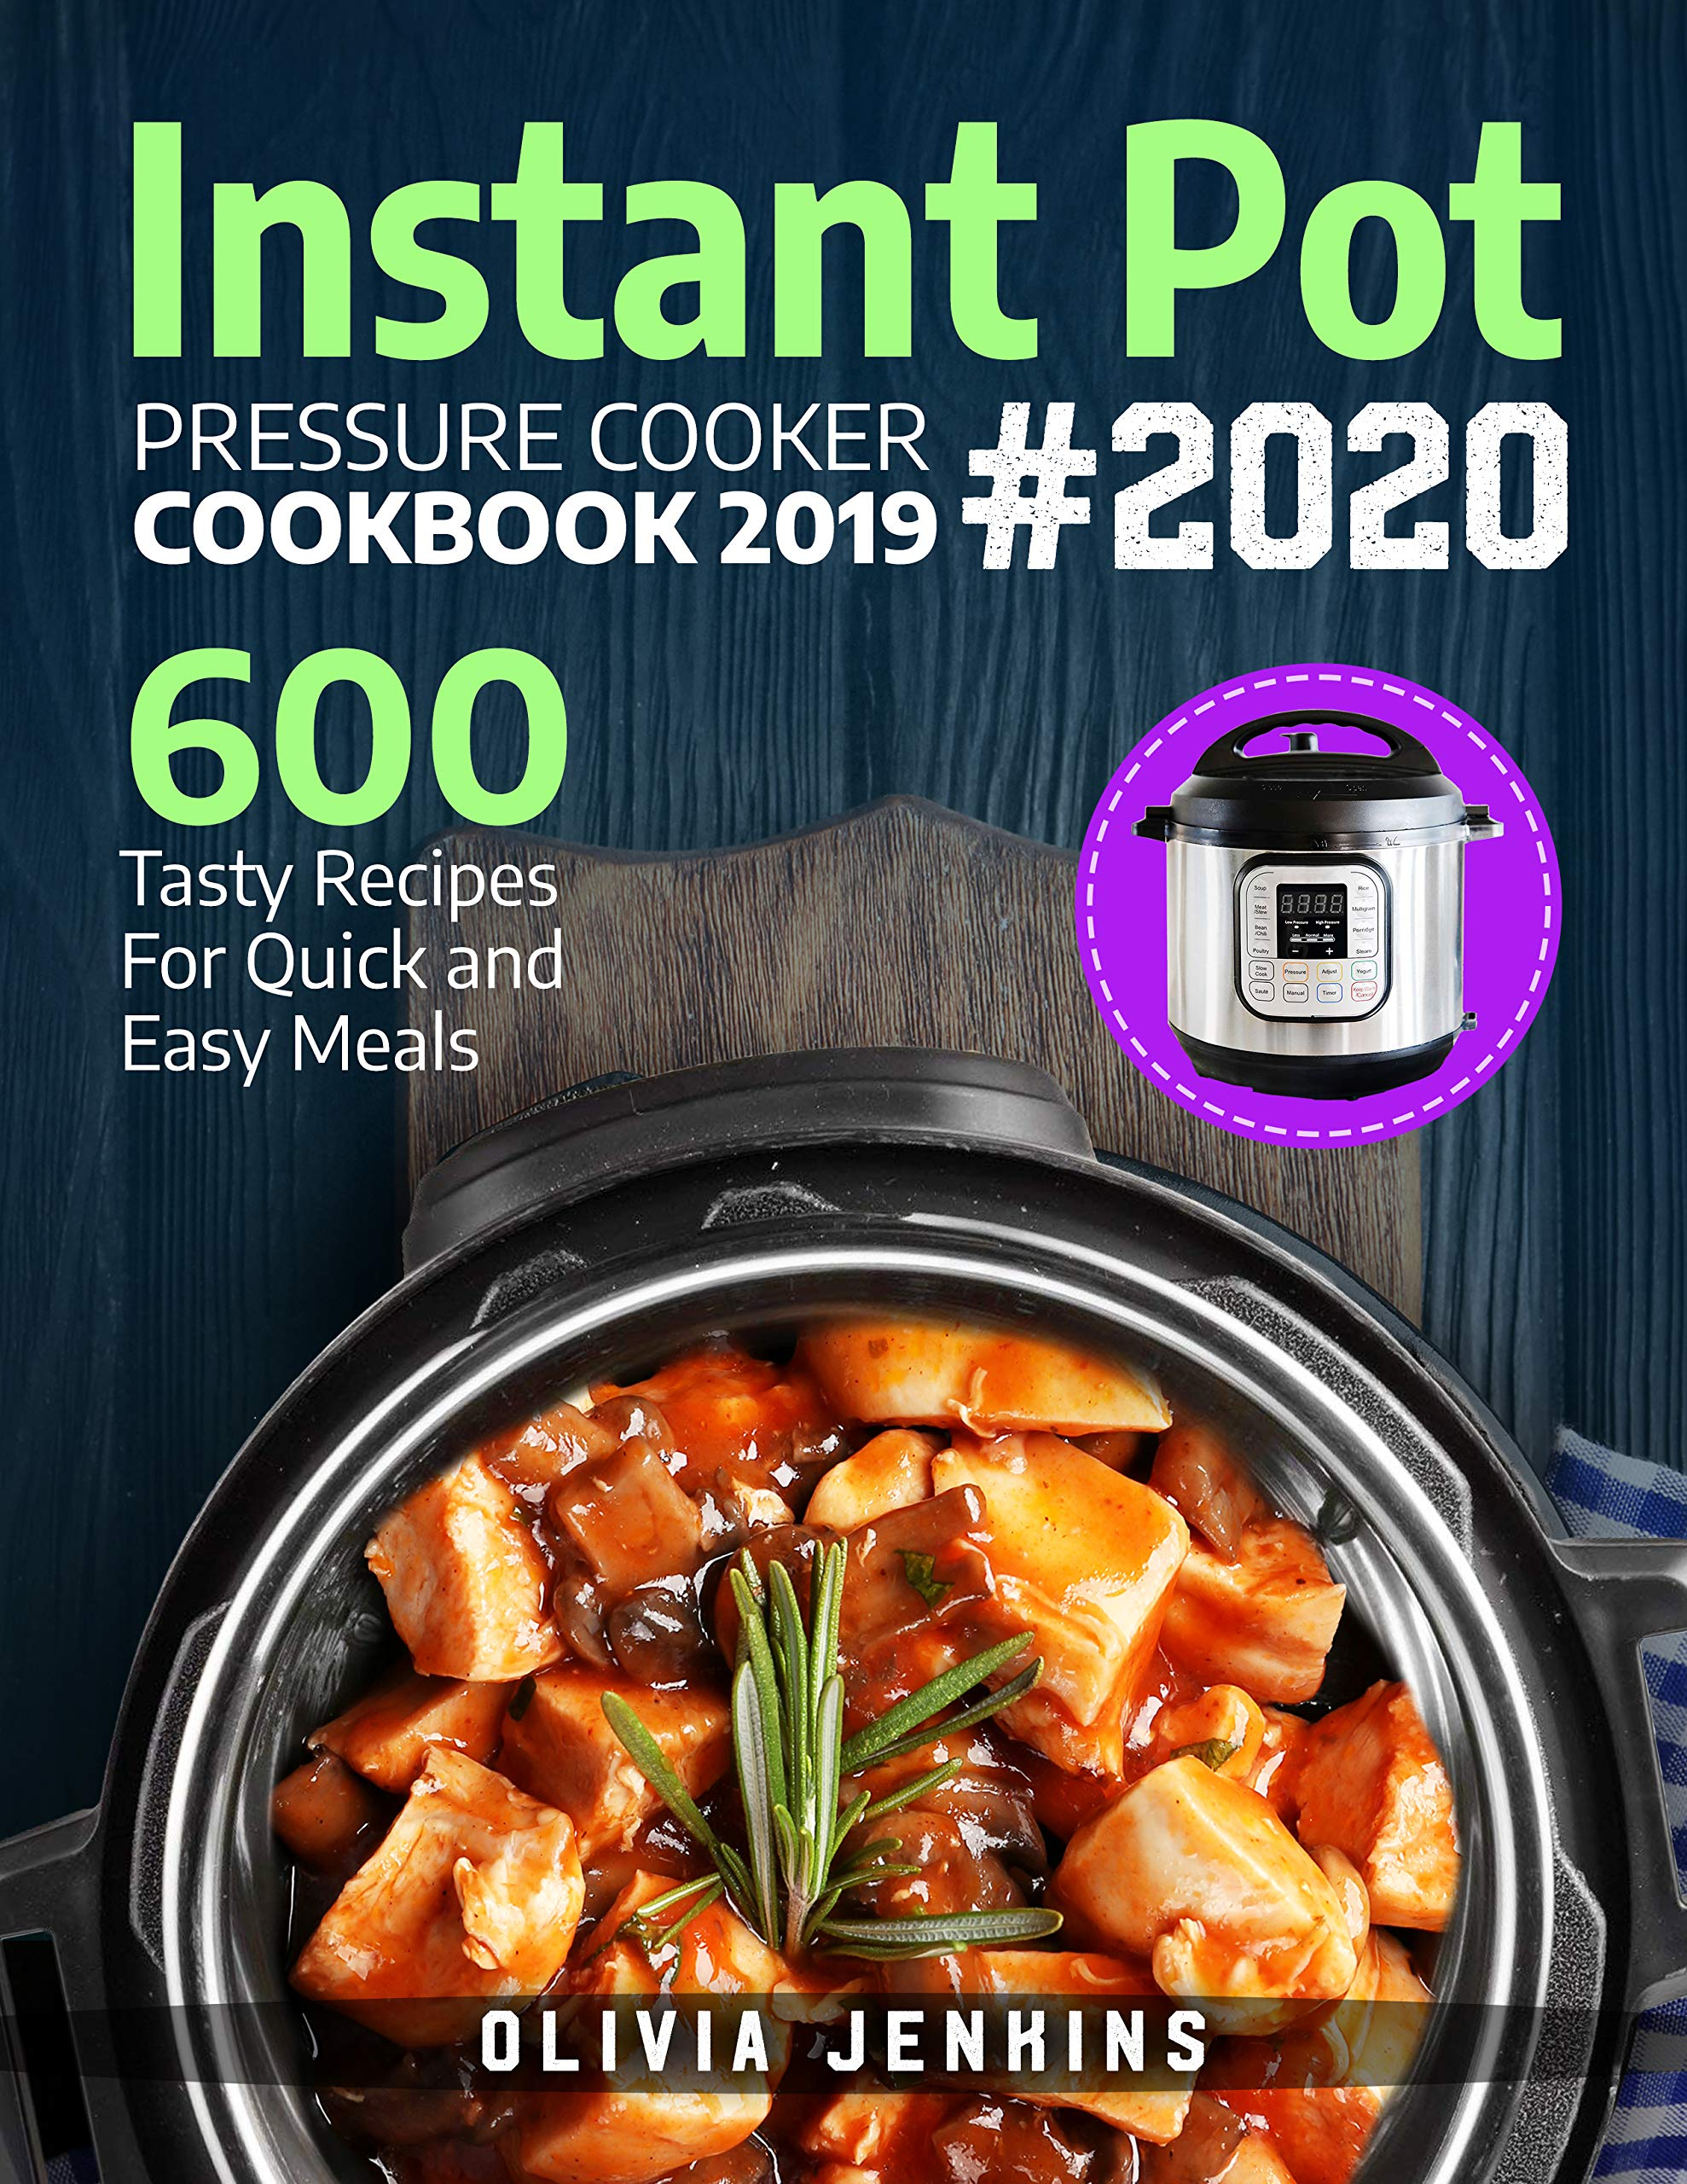 Instant Pot Pressure Cooker Cookbook 2019  600 Tasty Recipes For Quick And Easy Meals  English Edition